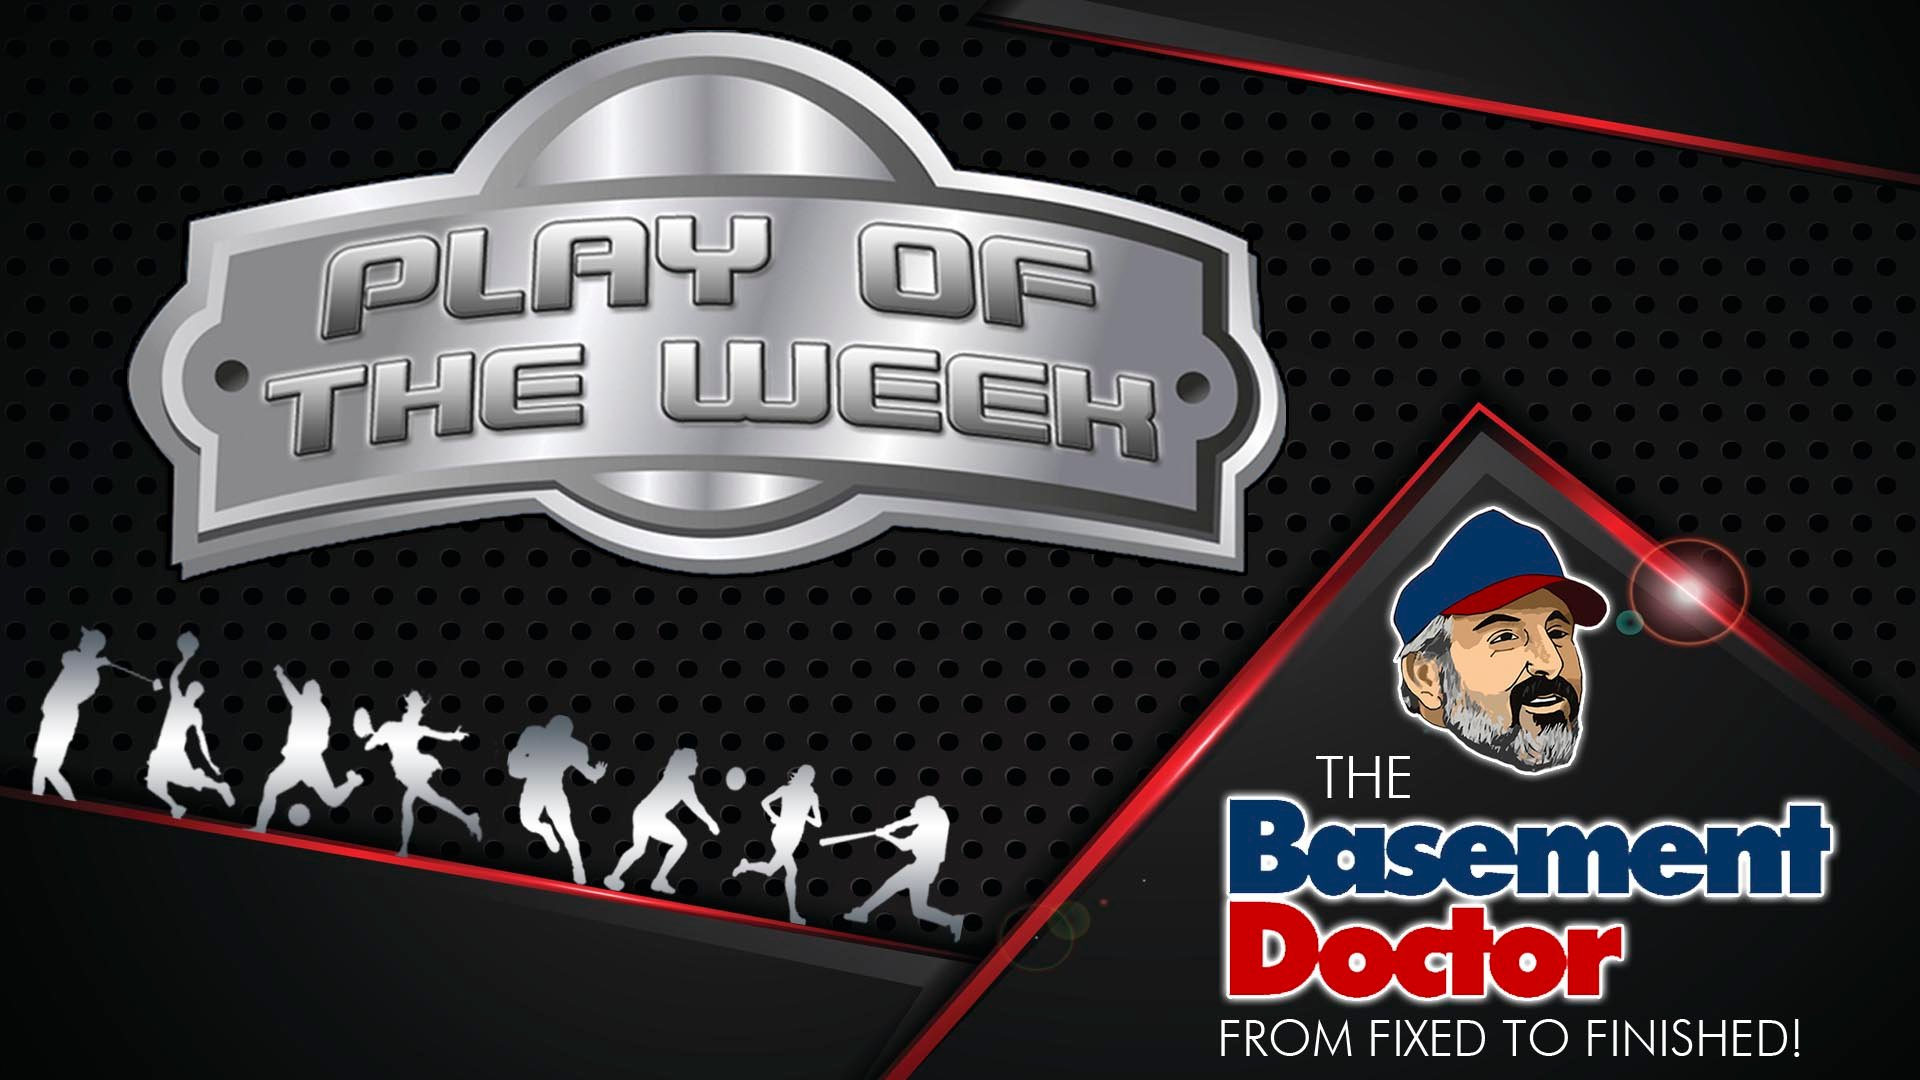 Basement Doctor Play Of The Week